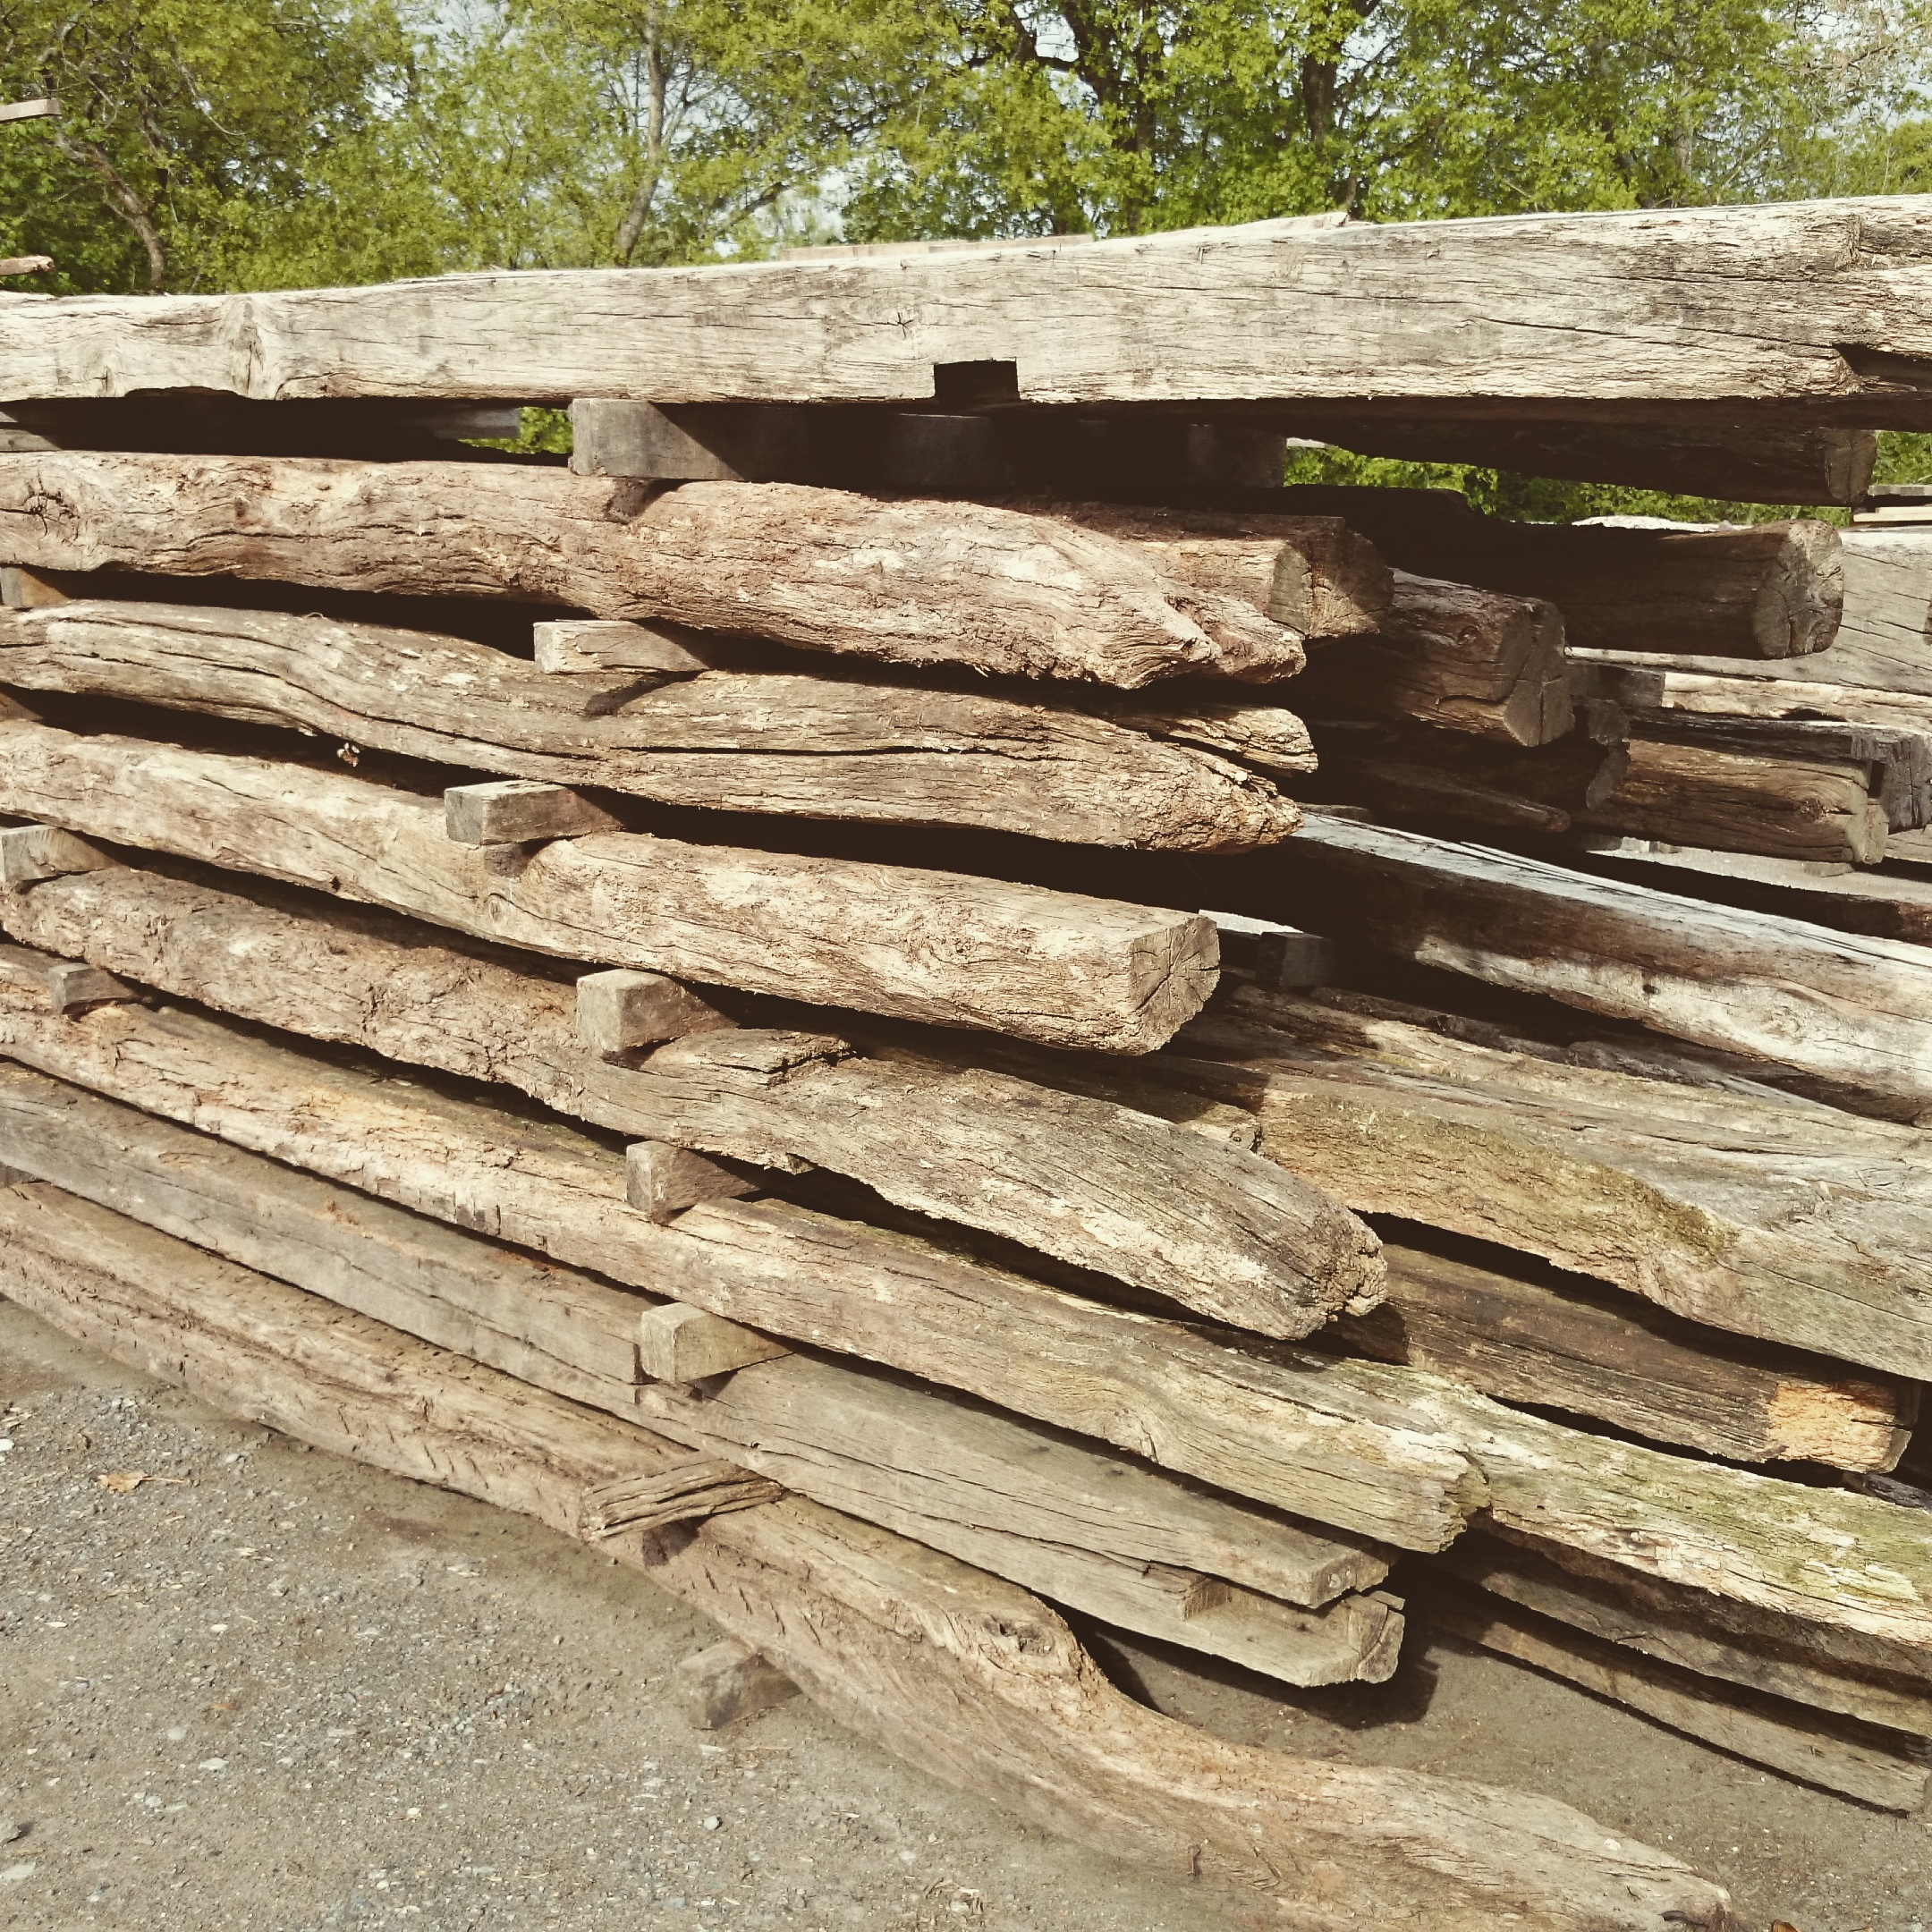 Selecting reclaimed beams for a frame is meticulous, but rewarding